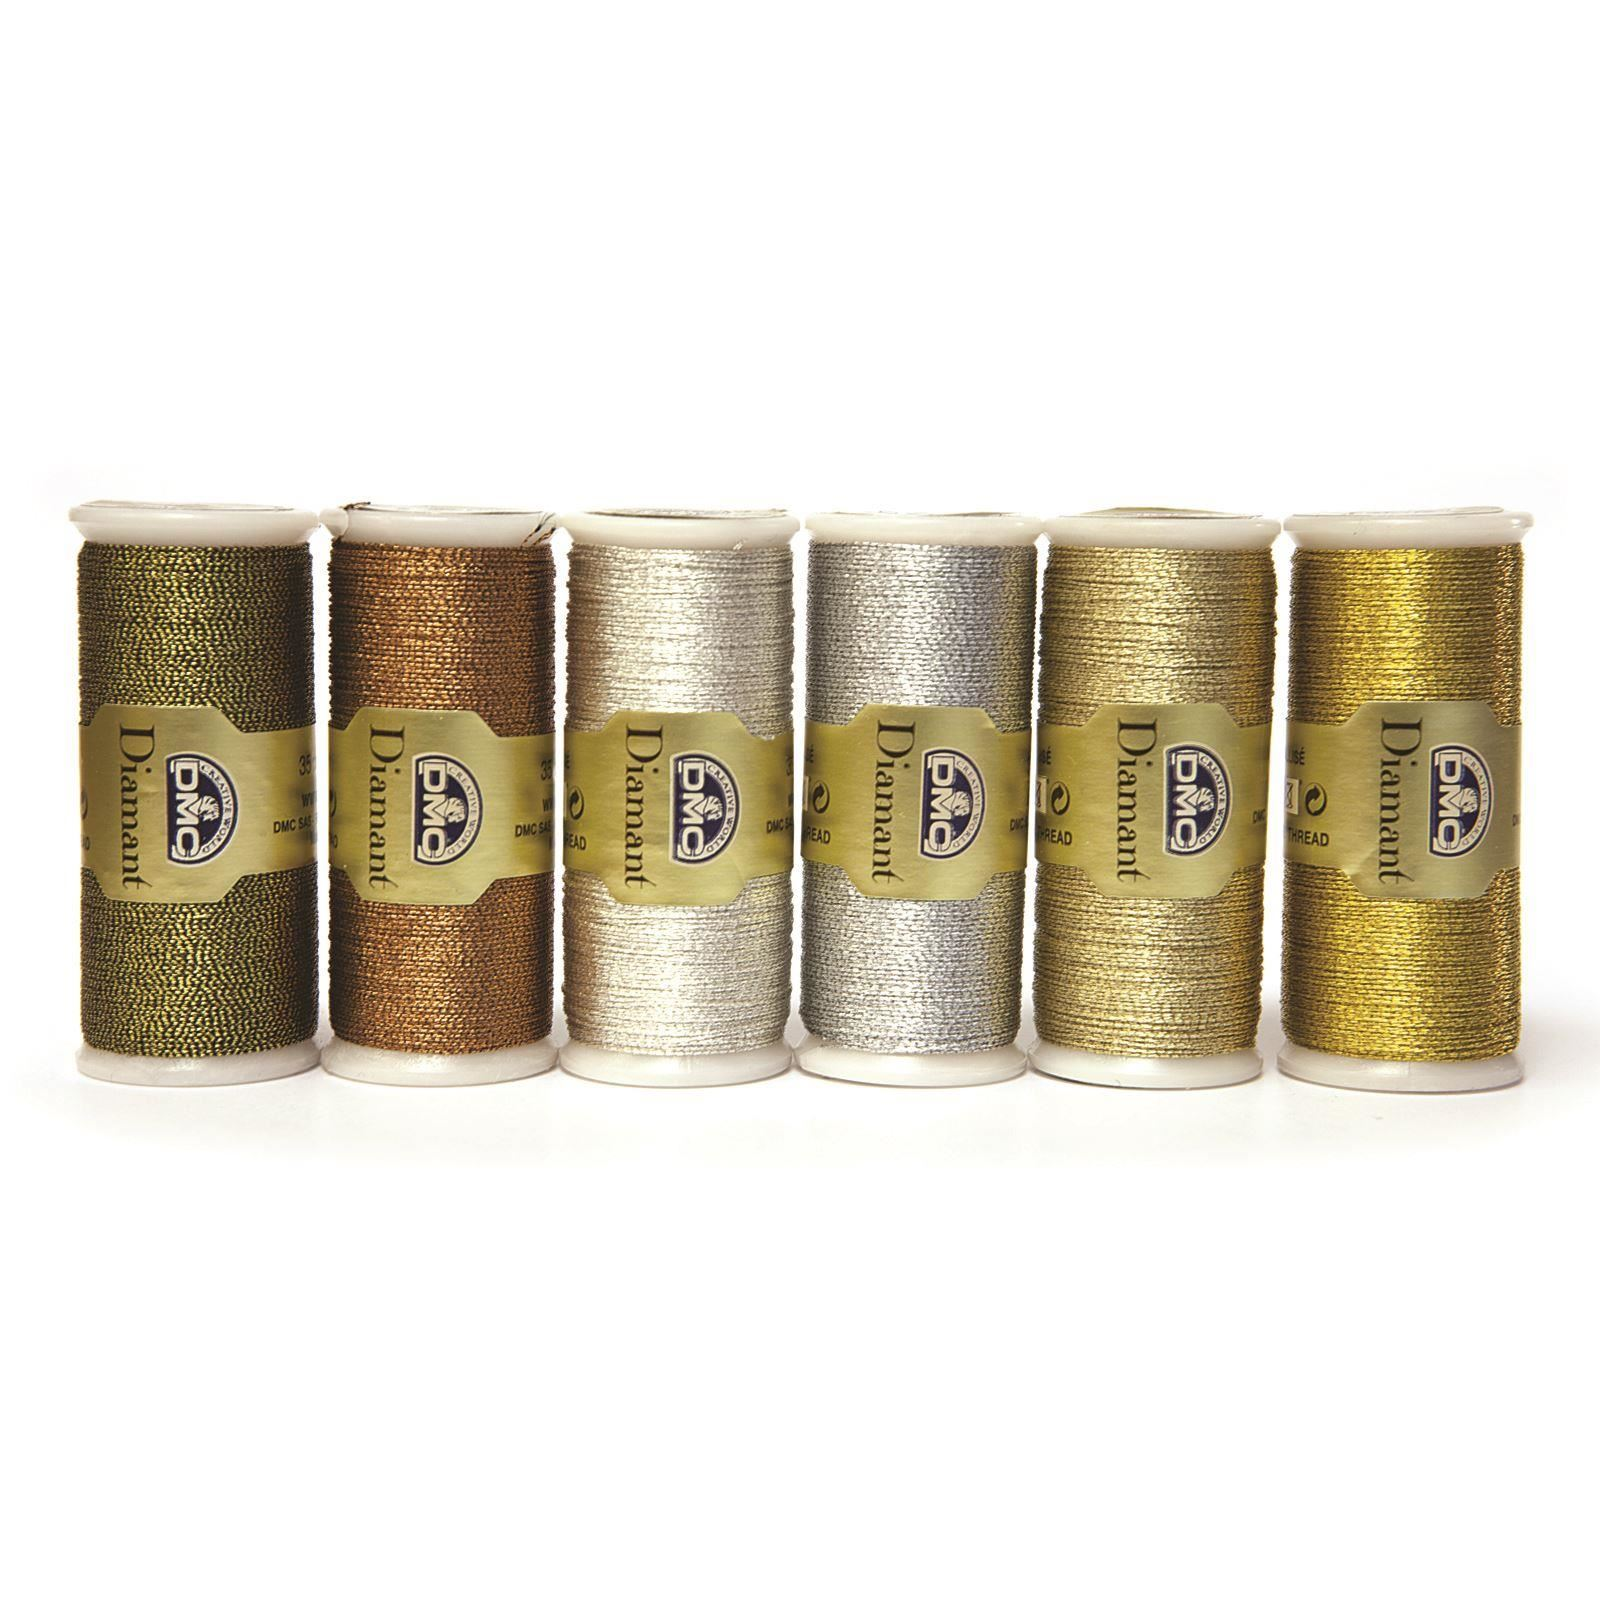 DMC-Diamant-Metallic-Embroidery-Thread-35m-Spool-Cross-Stitch thumbnail 17